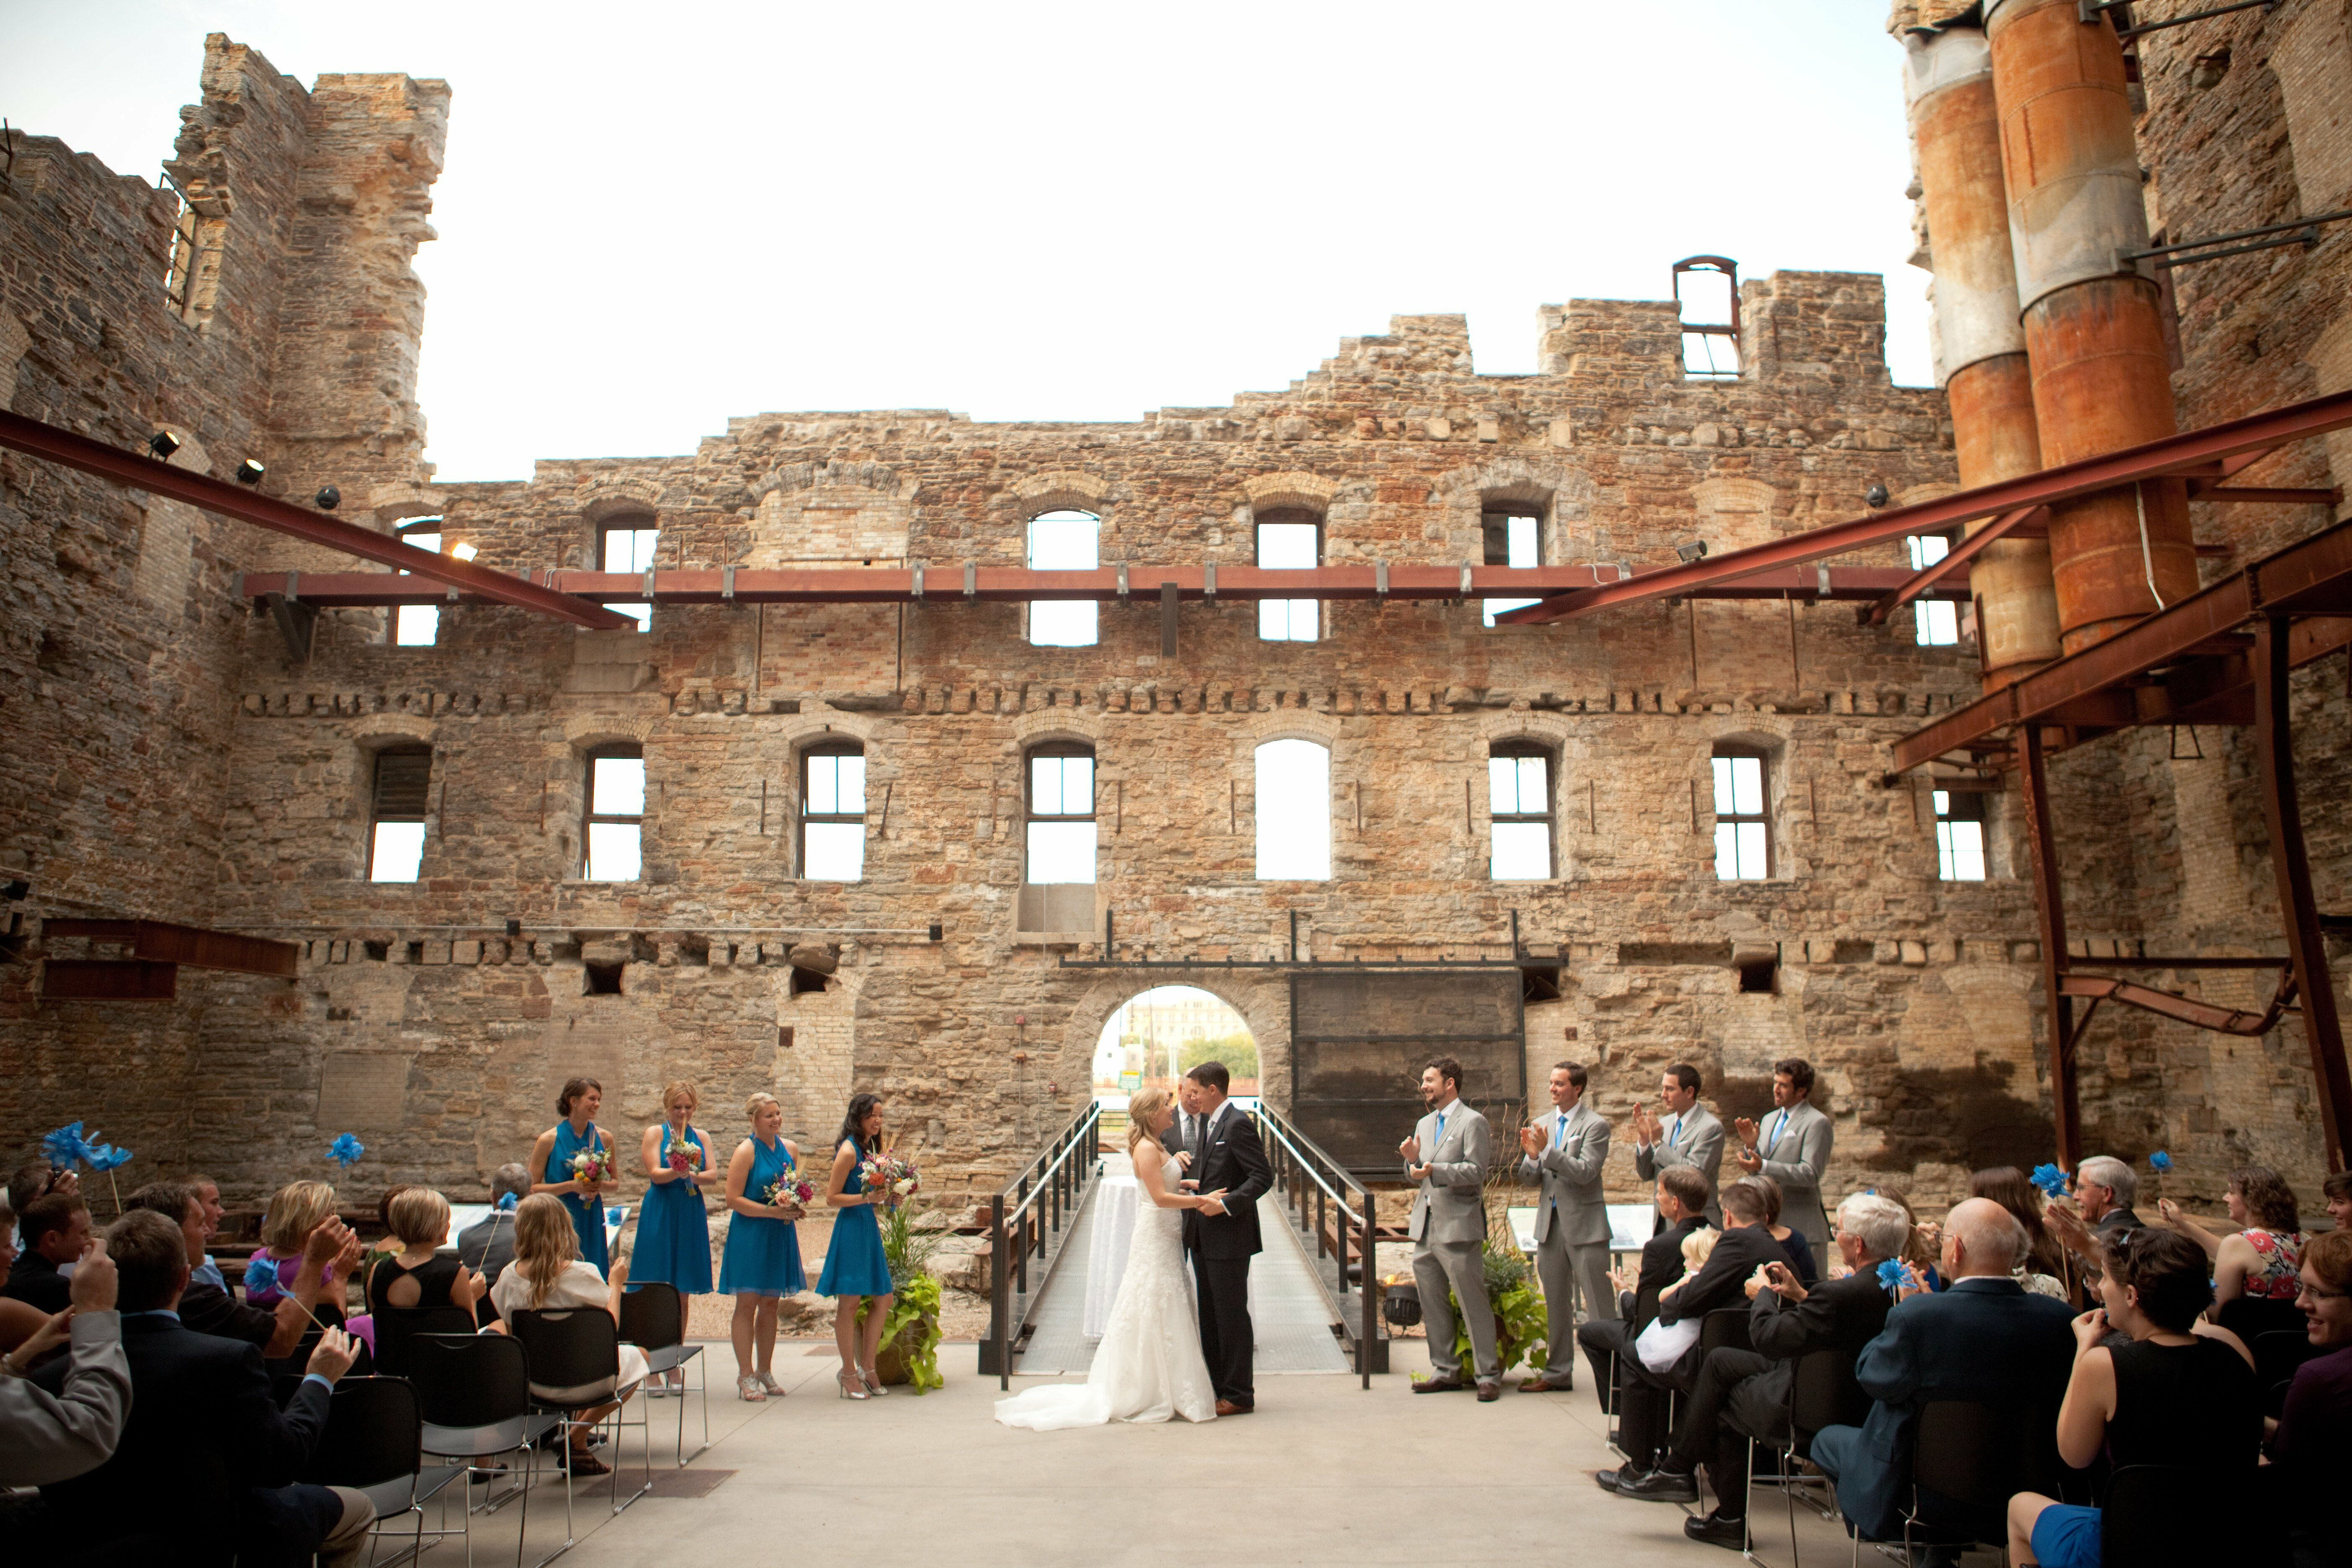 Mill city museum outdoor courtyard ceremony for Cheap wedding locations nyc